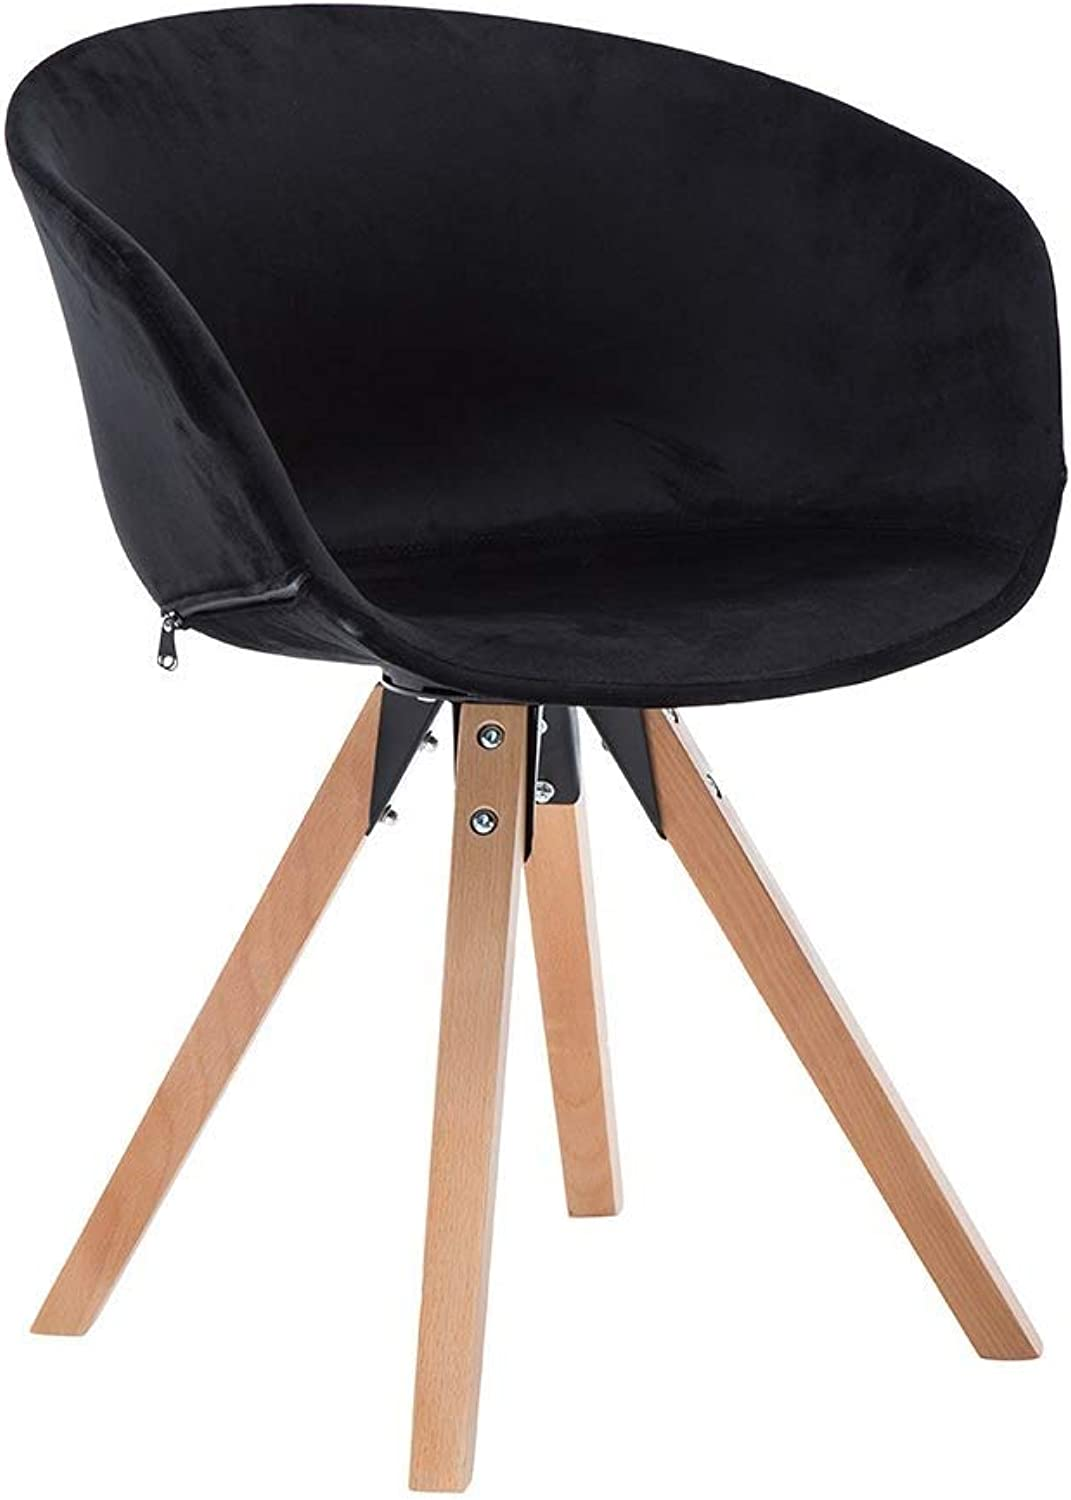 Wooden Creative Lounge Chair, Sturdy and Durable, Convenient Solid Wood Bracket, Coffee Shop, Seat Bar, Tea Shop, Chair with Backrest, Armchair, Dining Chair (color   Black)